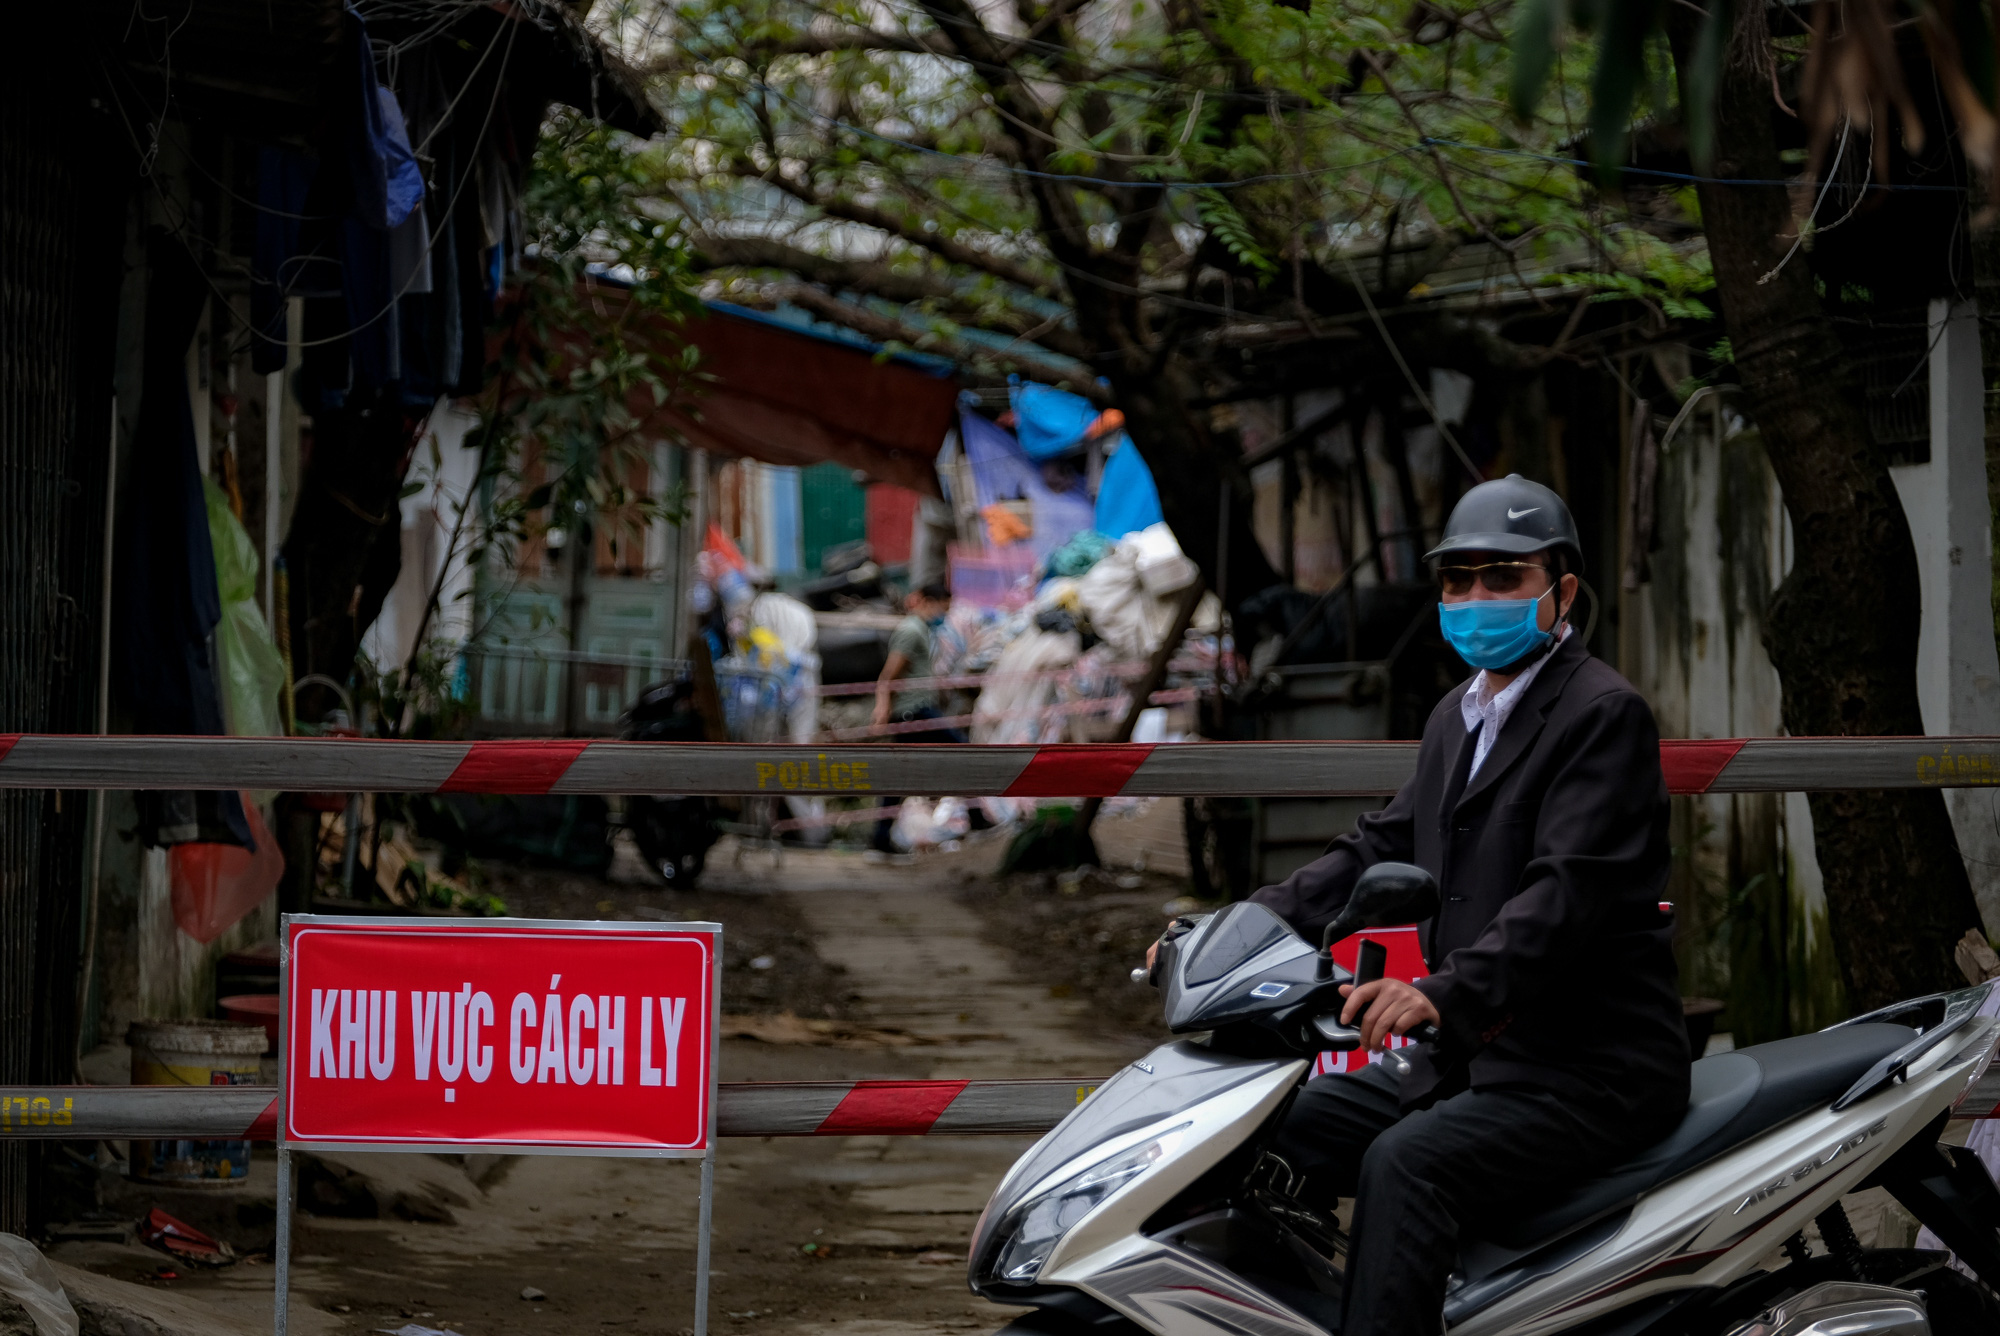 British man diagnosed with COVID-19 in Hue